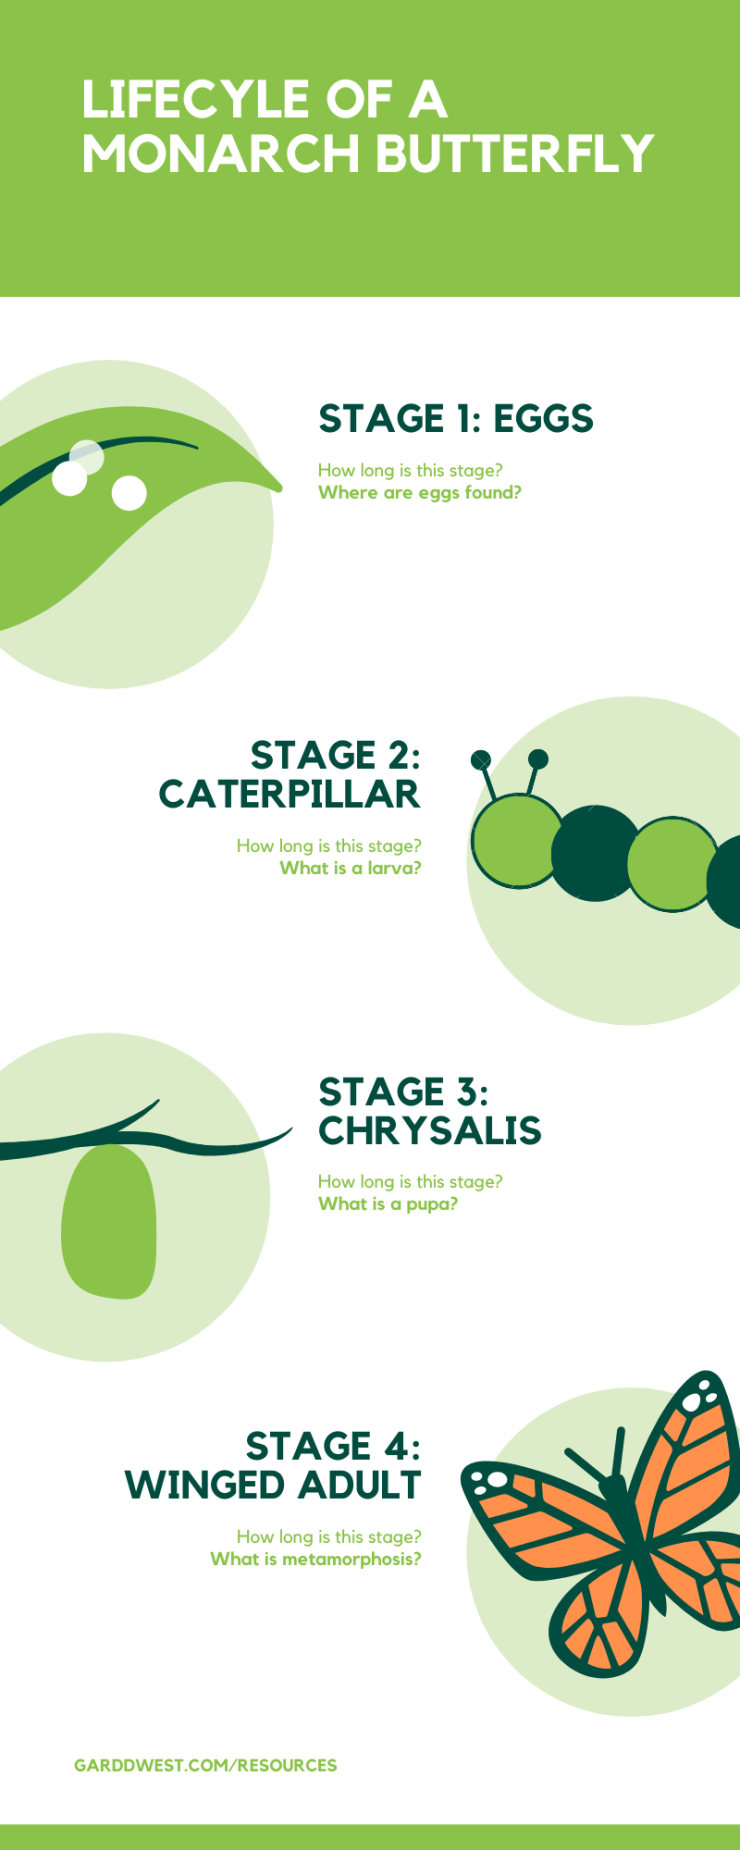 Lifecycle of a Butterfly Infographic GARDDWEST